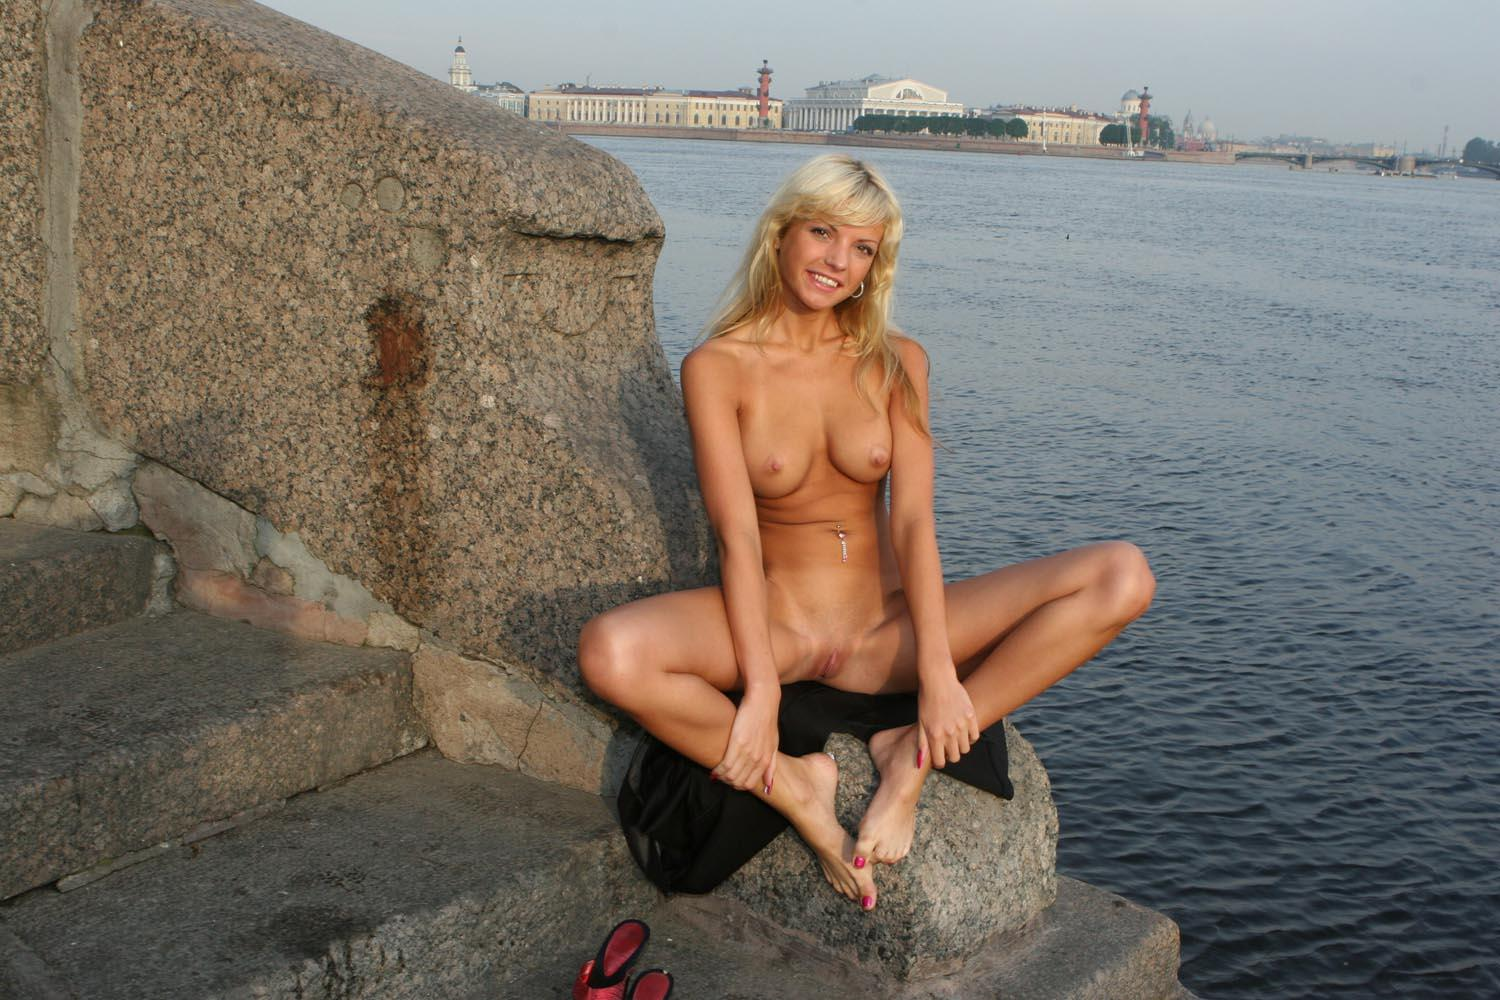 Hot Blonde With Nice Boobs Flashes Her Goods At City -3491